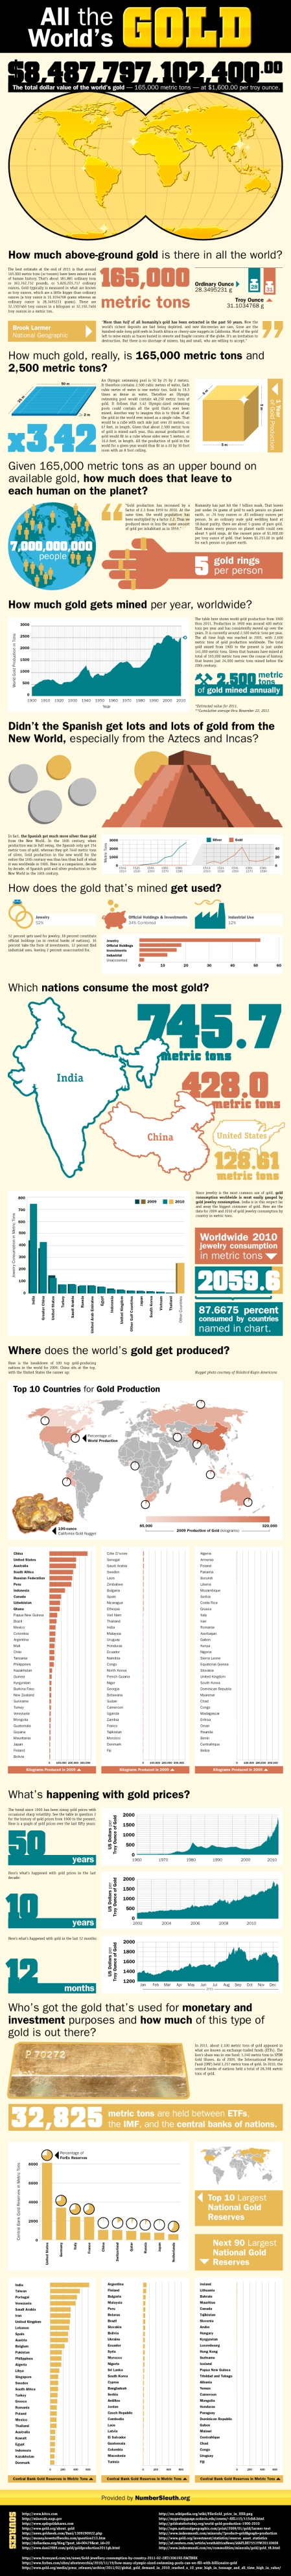 gold 165,000 MT popular published total world wide reserves